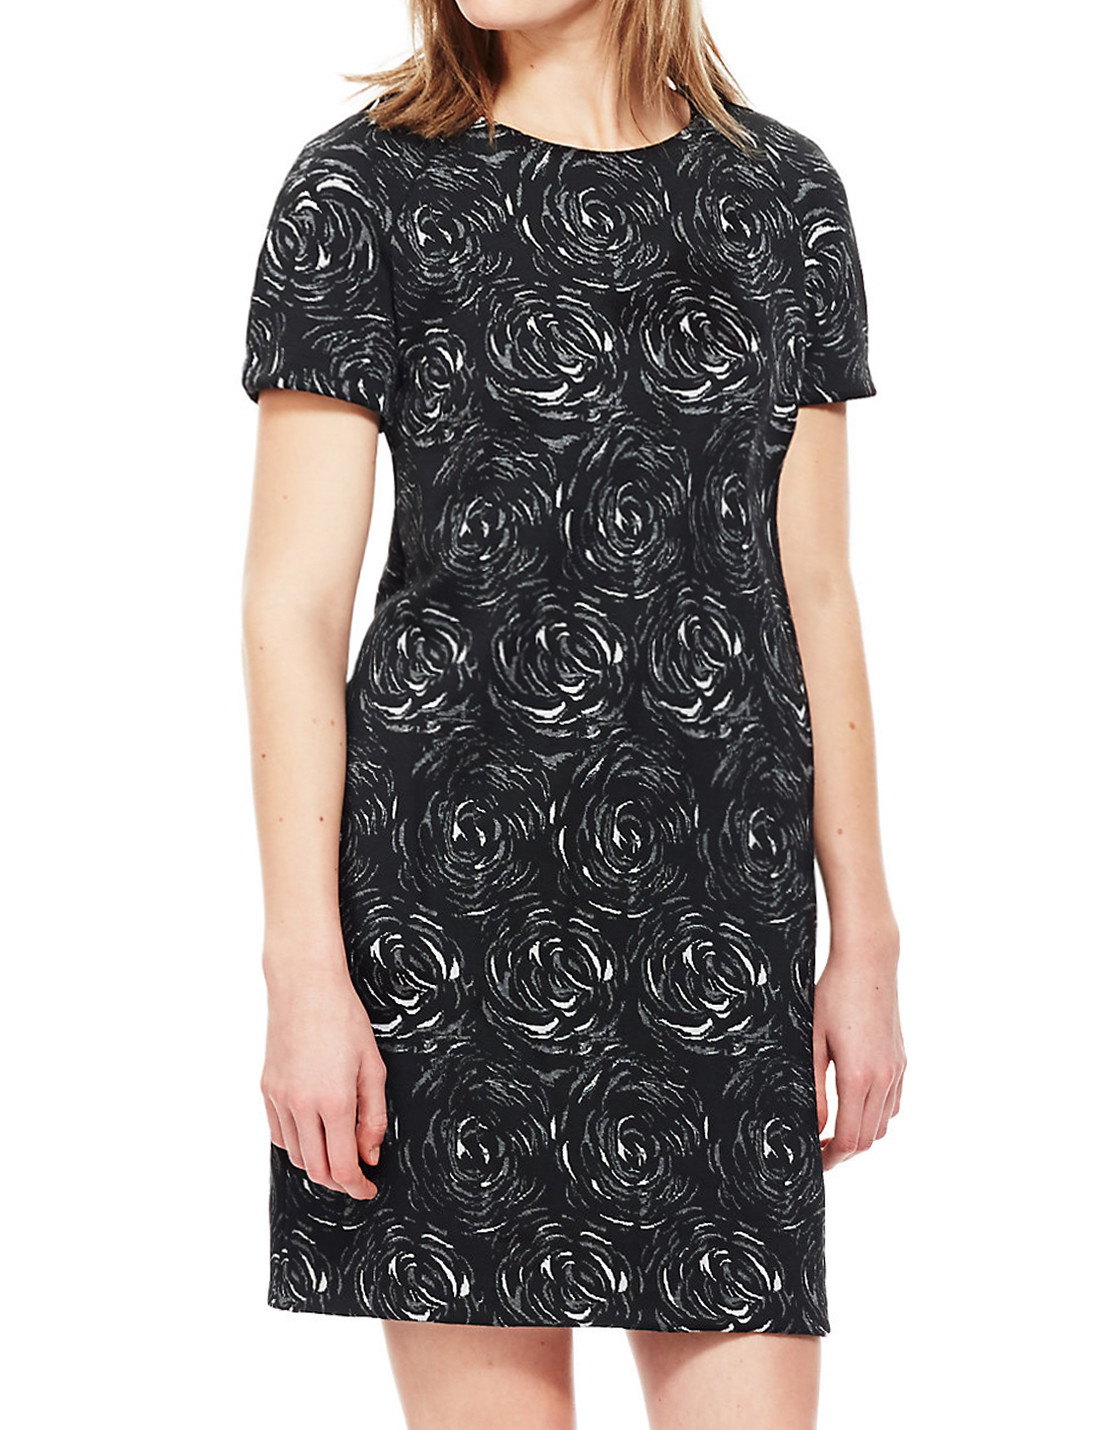 Black Floral Jacquard Tunic Dress